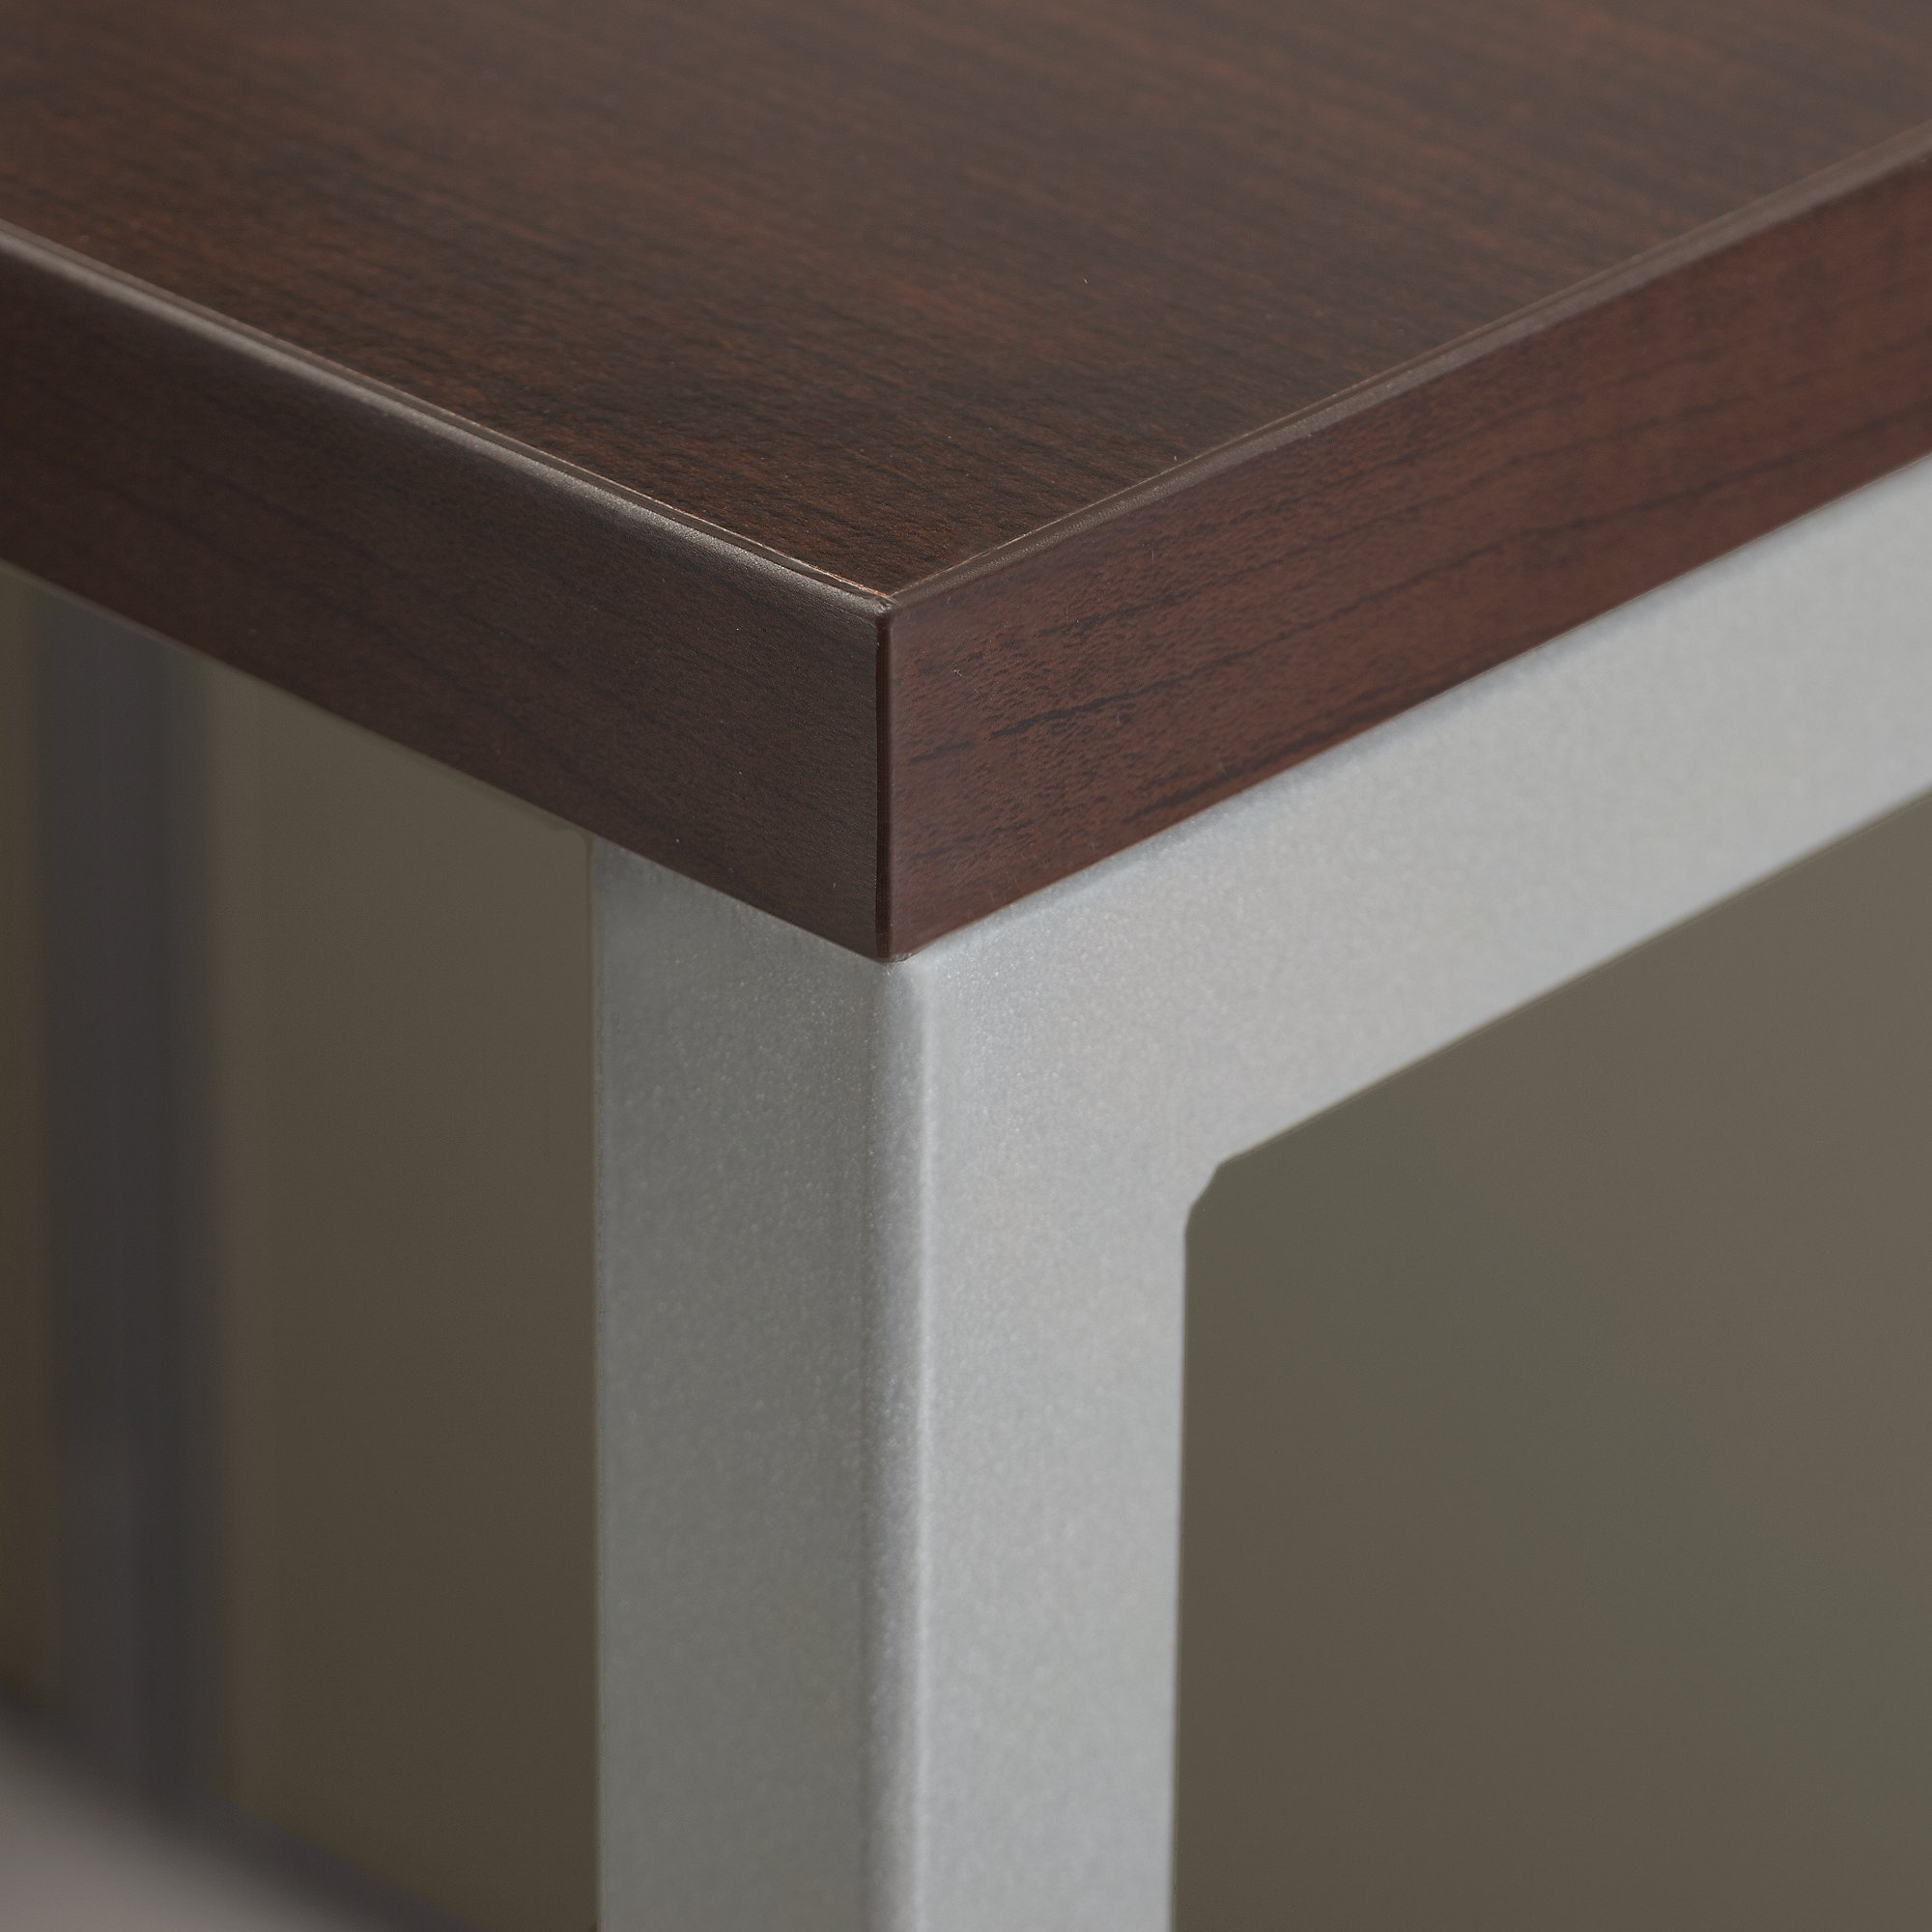 easy office surface and frame